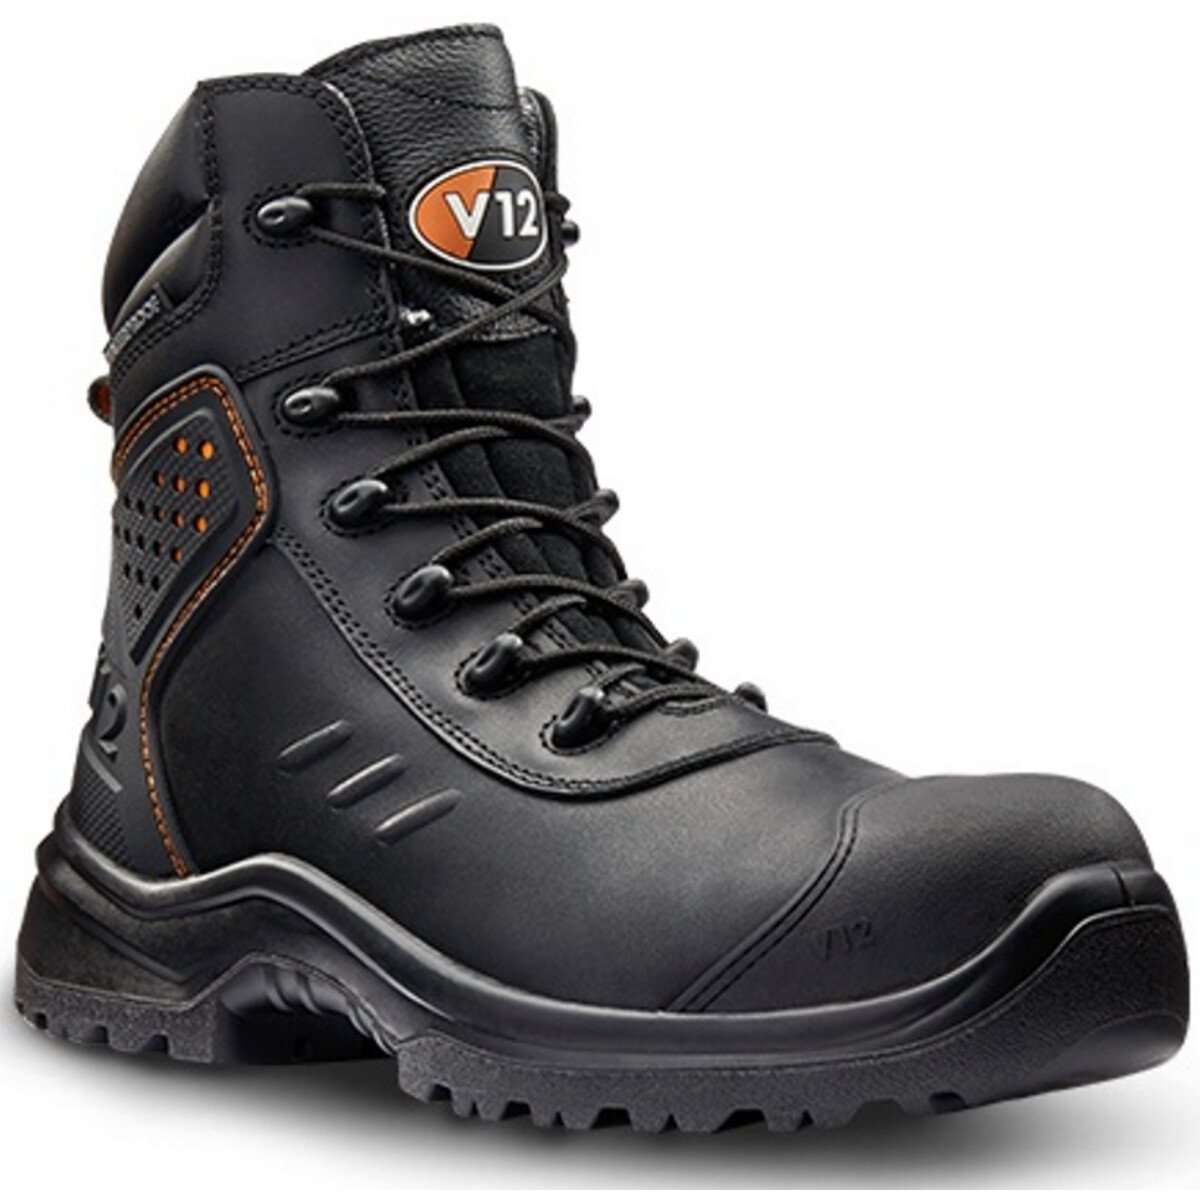 V12 Footwear V1750 Defender STS SRC S3 Metal Free Black Safety Boot